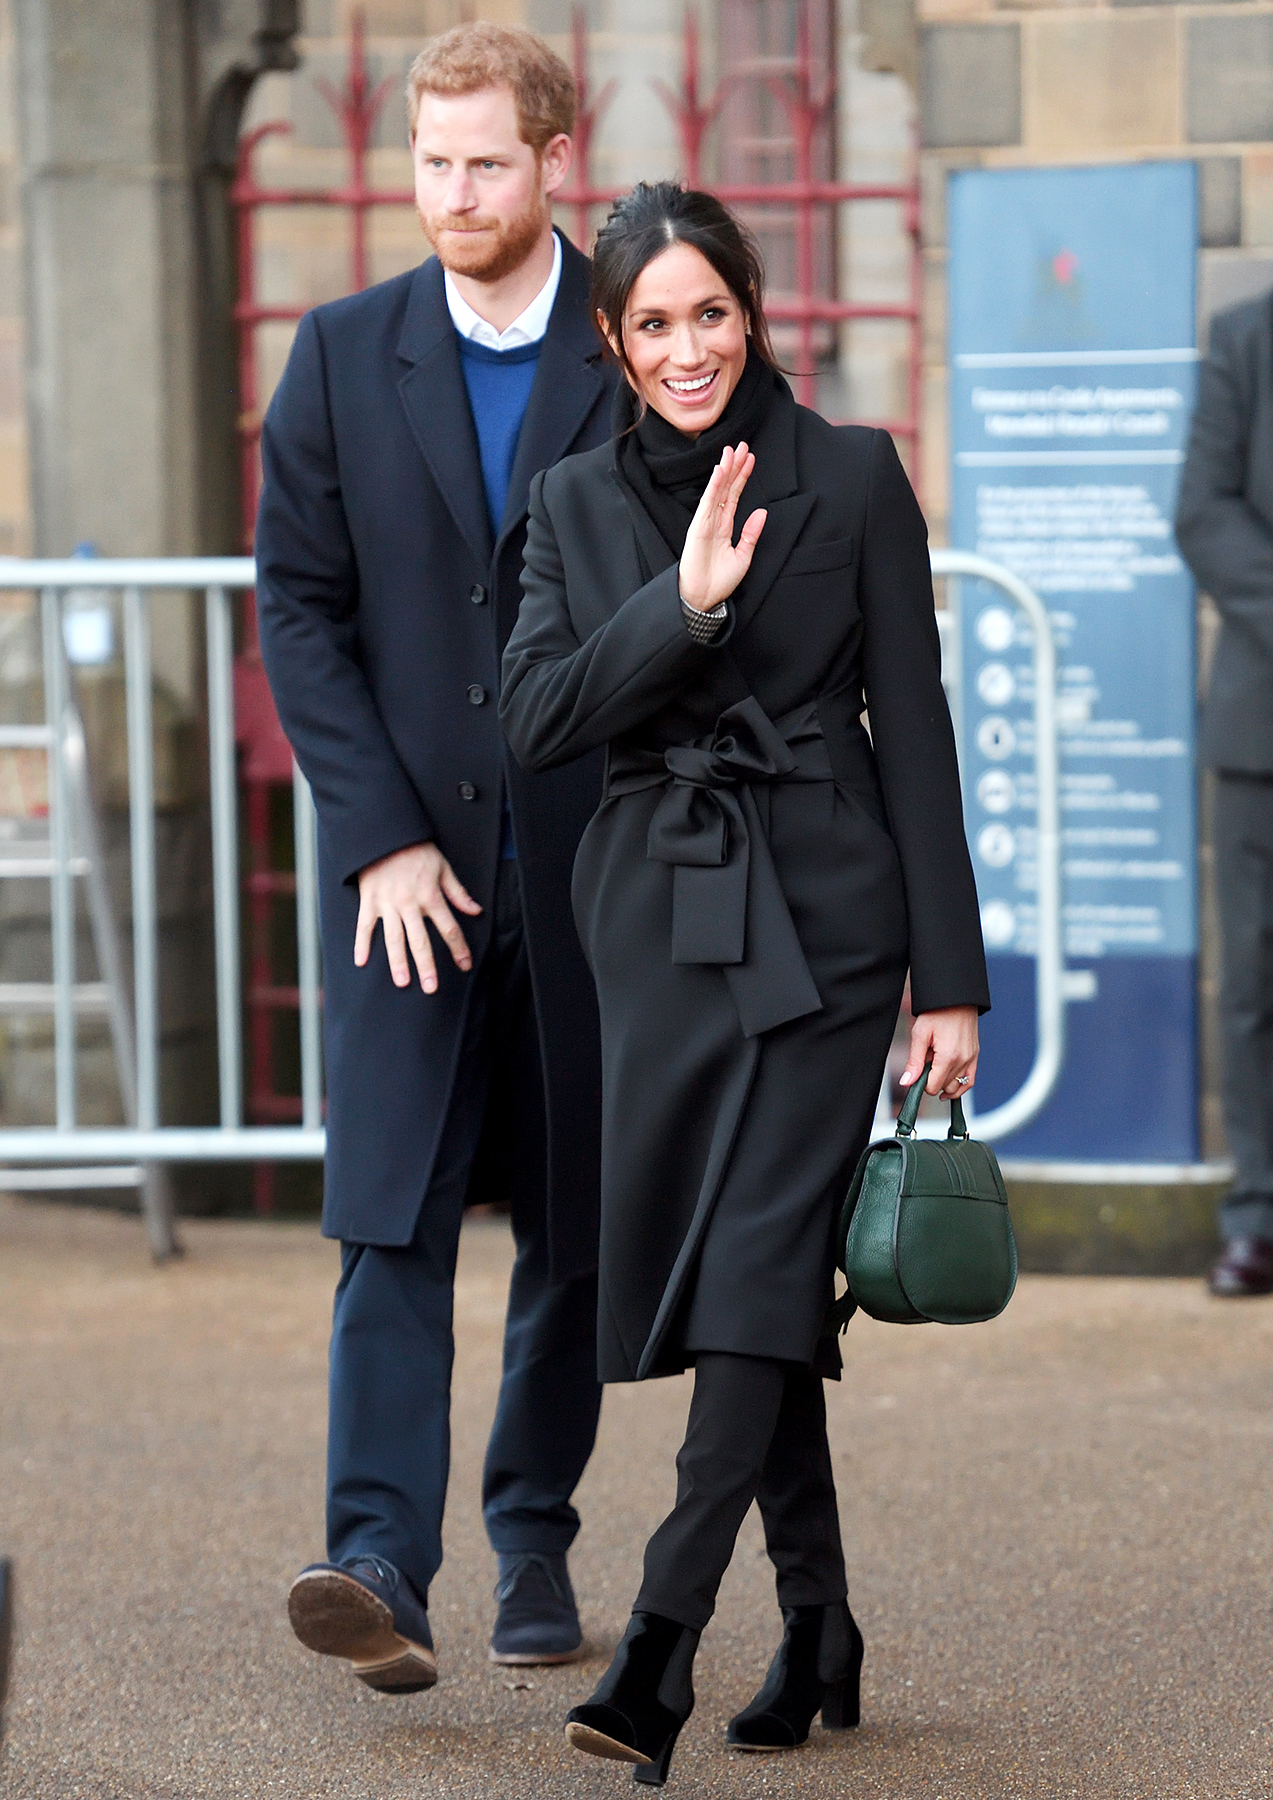 Meghan Markle Has Lost Sleep Over Relatives As Wedding Nears